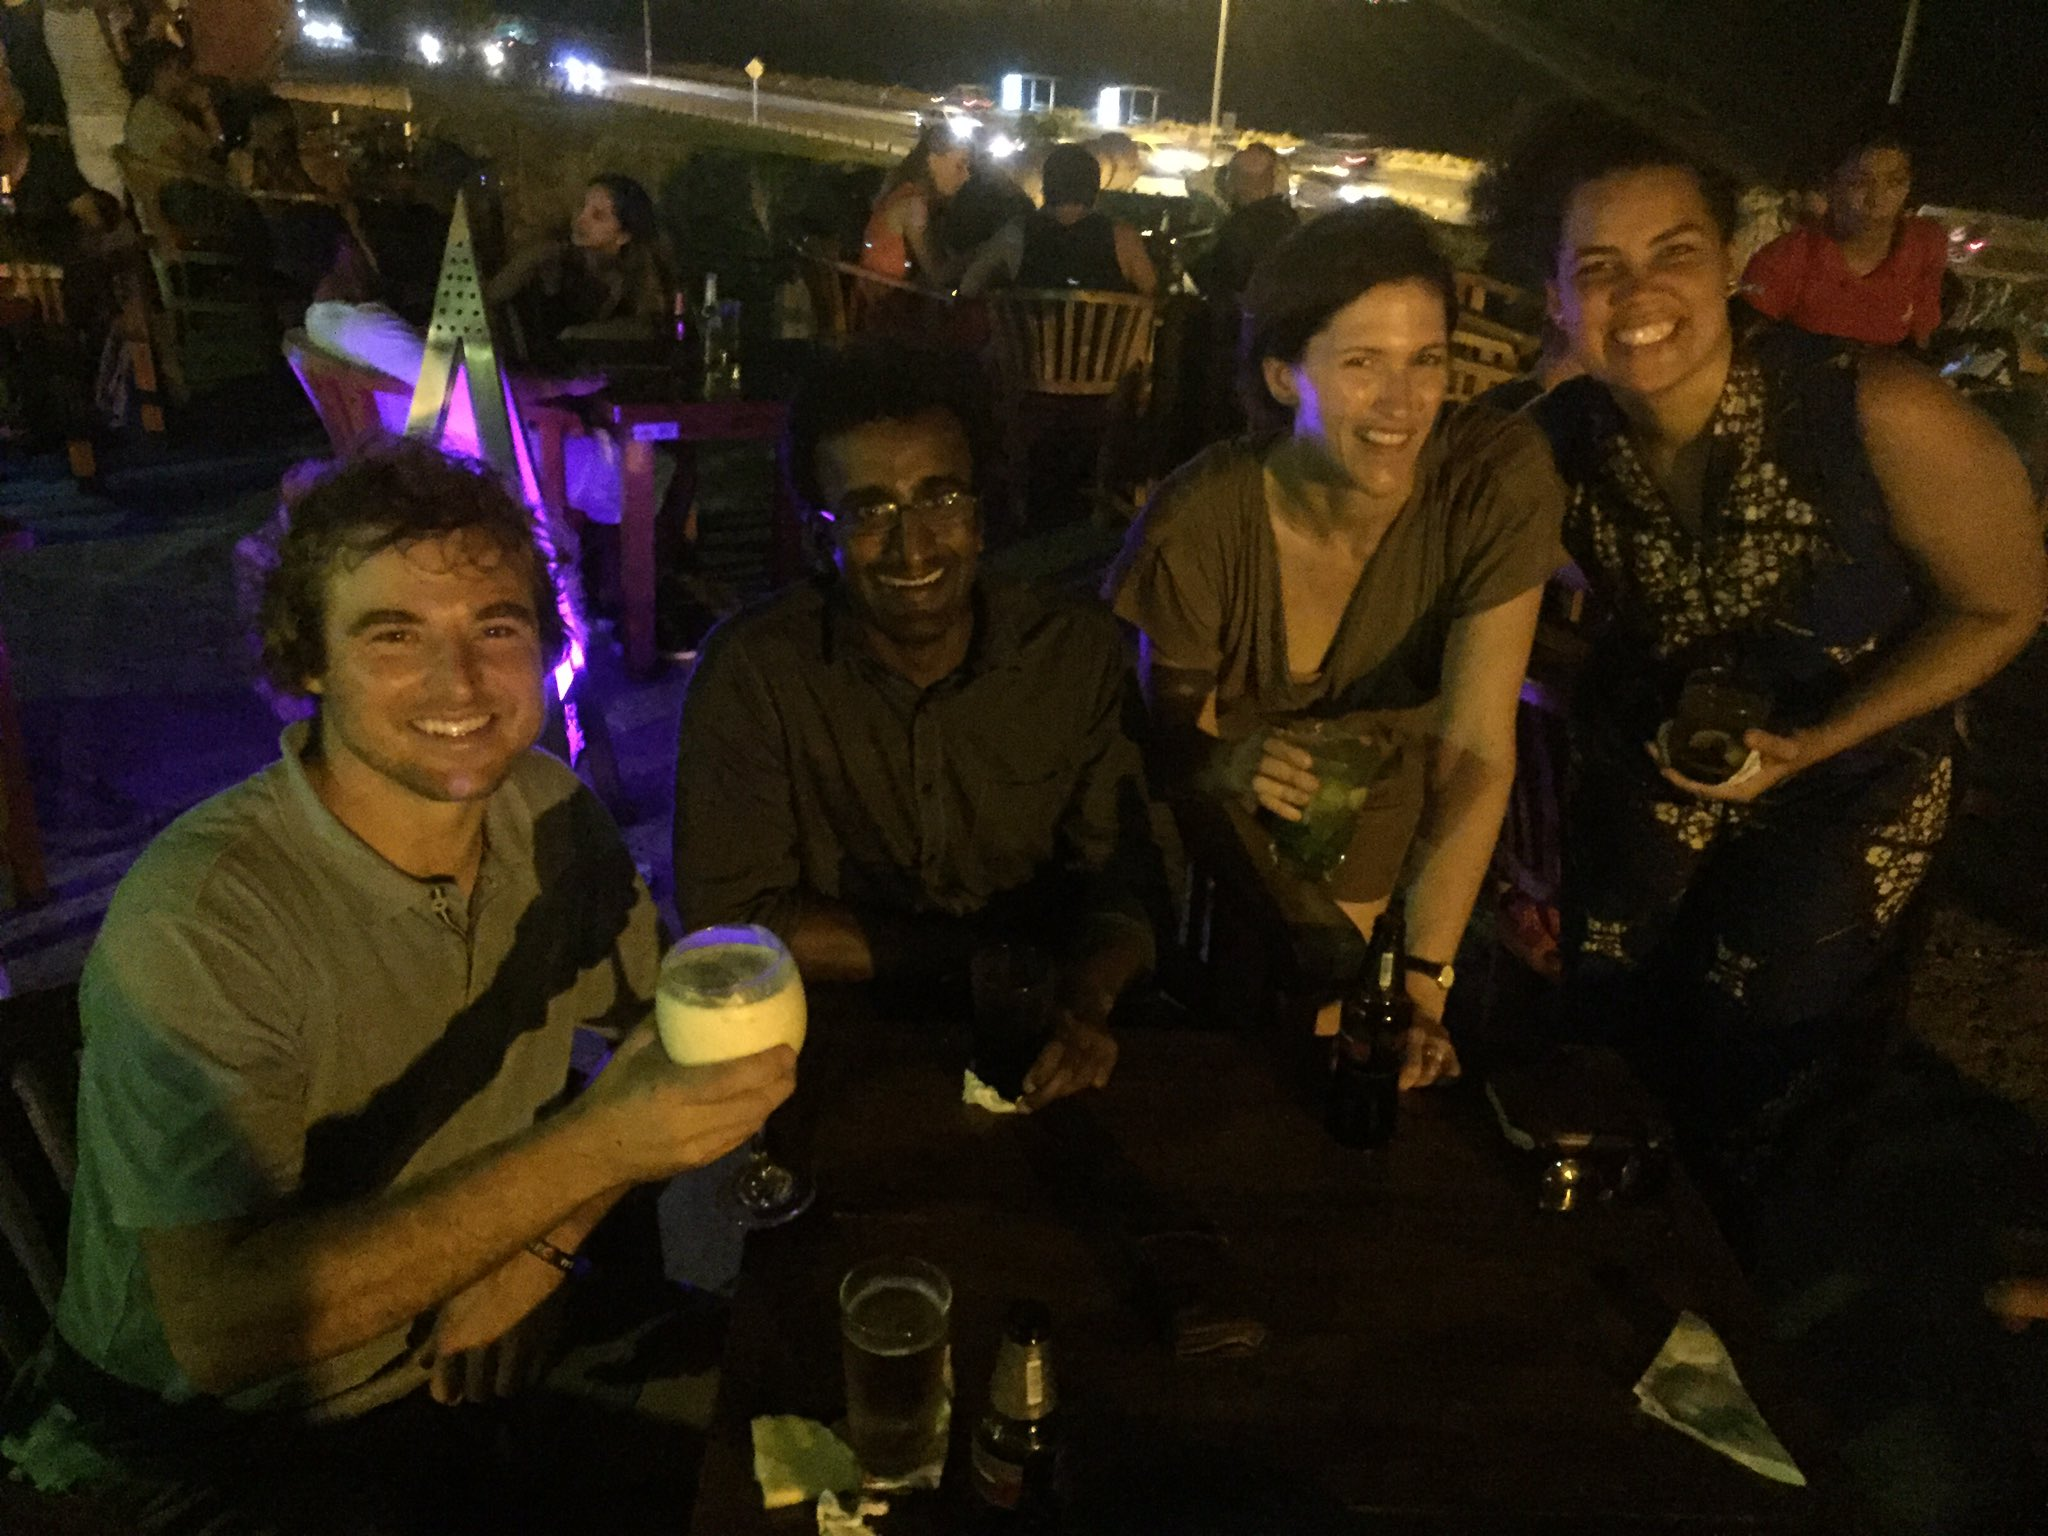 My last night #ICCB2017 w/ US science photographer, South African biologist, Angolan conservationist. Truly global affair. @NatGeoExplorers https://t.co/QQazs7jVul